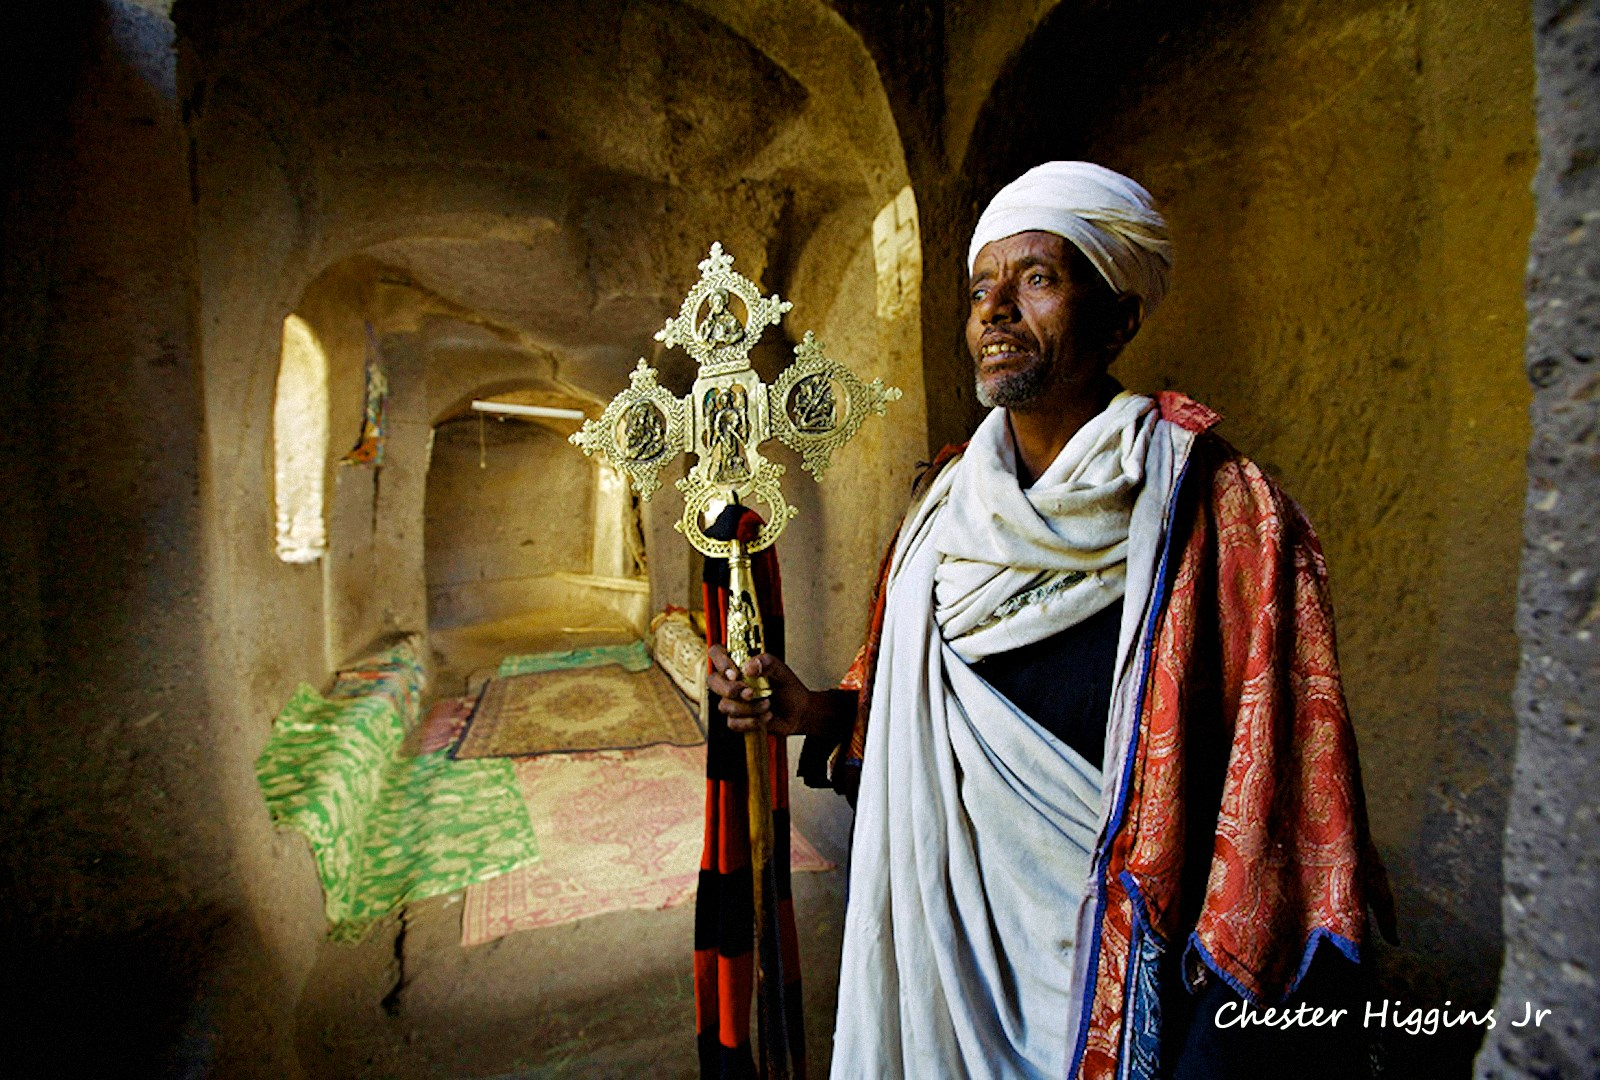 00 Chester Higgins. Lalibela. Asfa Mariam Church. Ethiopia 01. 06.06.15